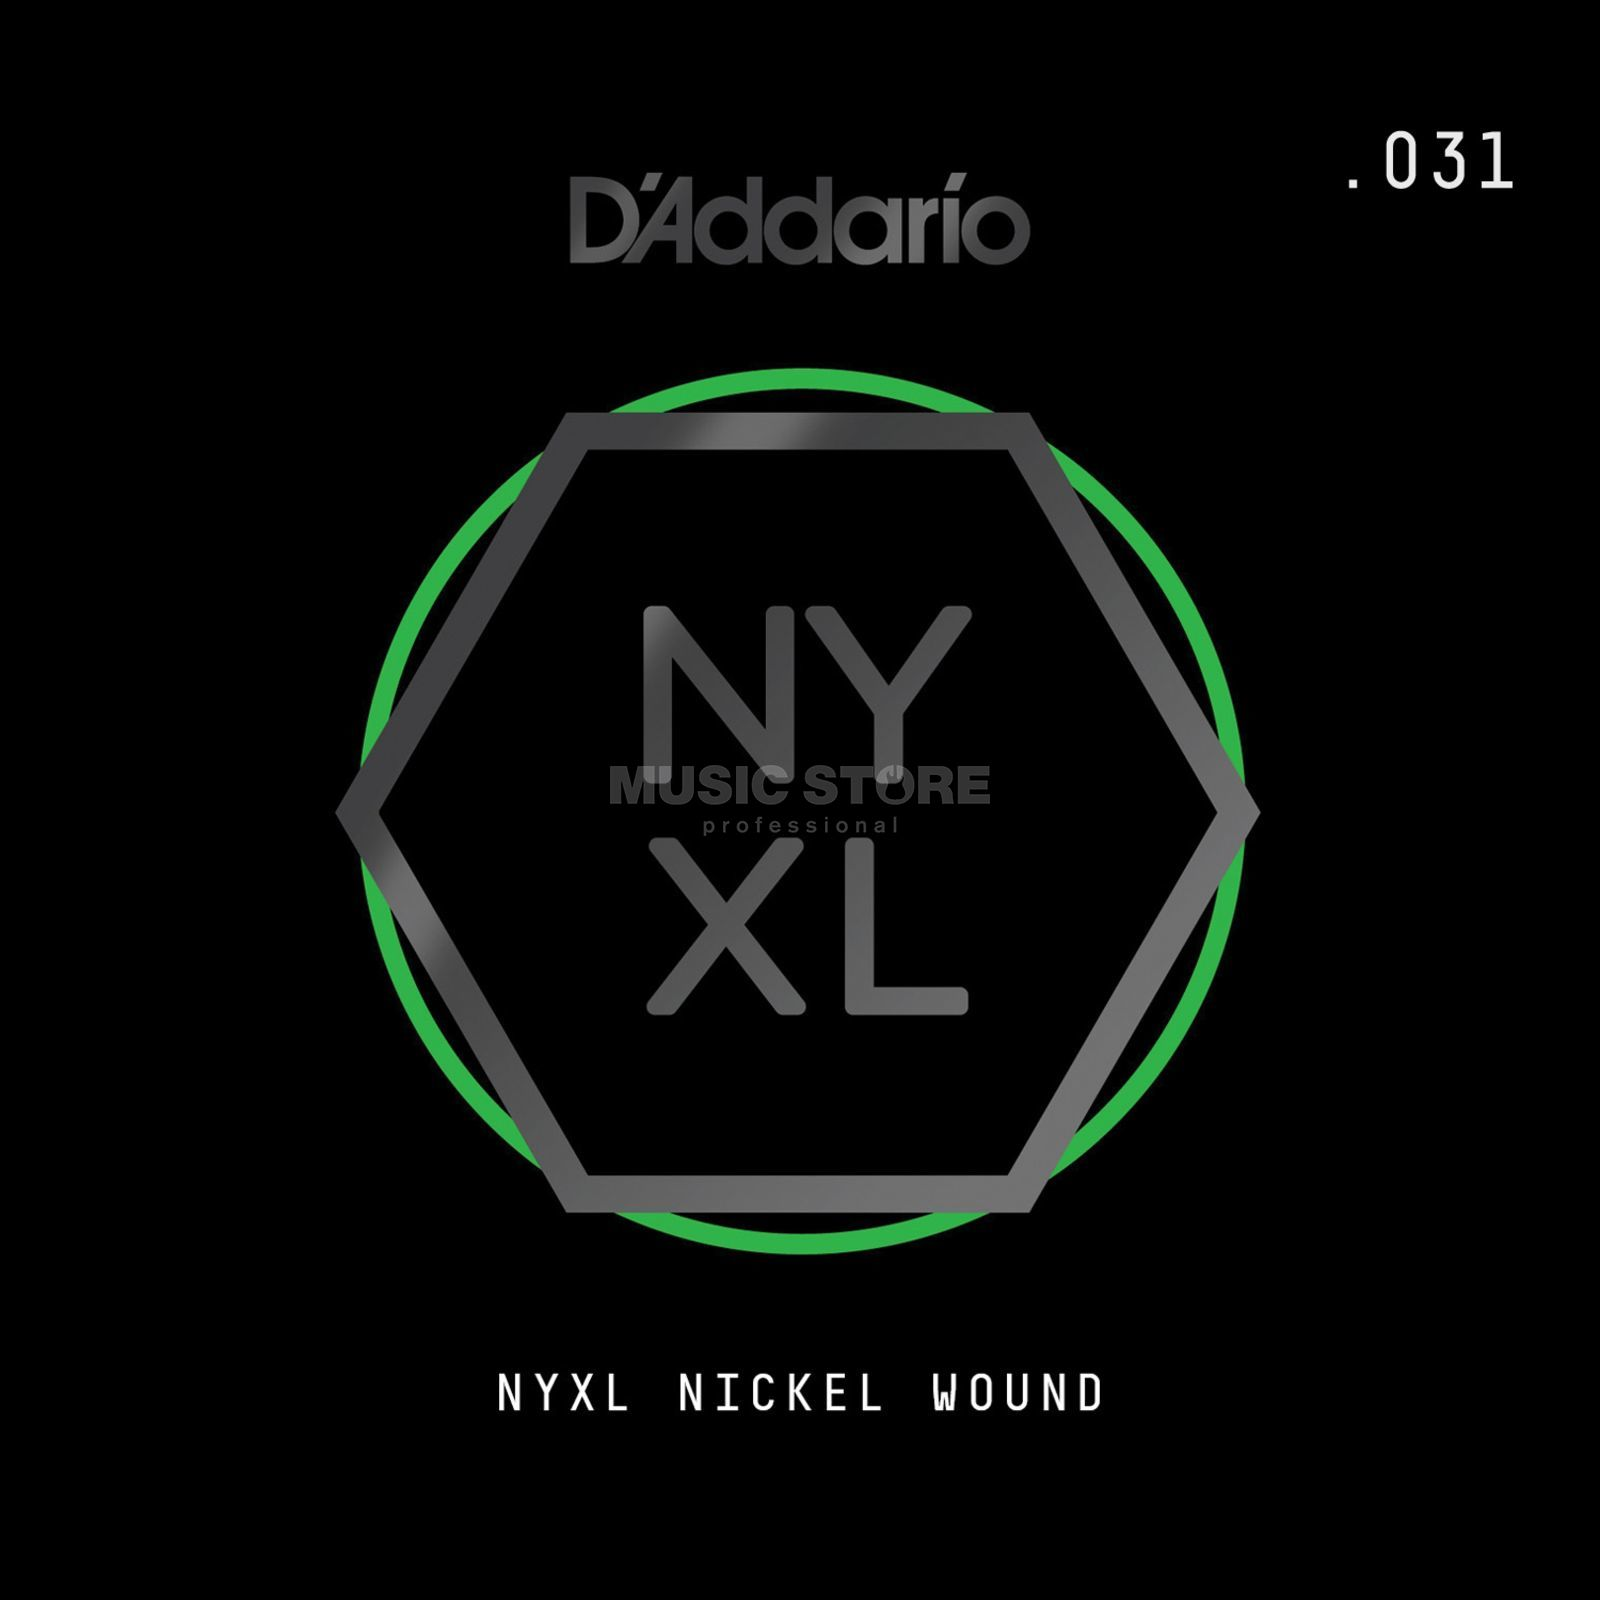 D'Addario NYNW031 Single String Nickel Wound Zdjęcie produktu